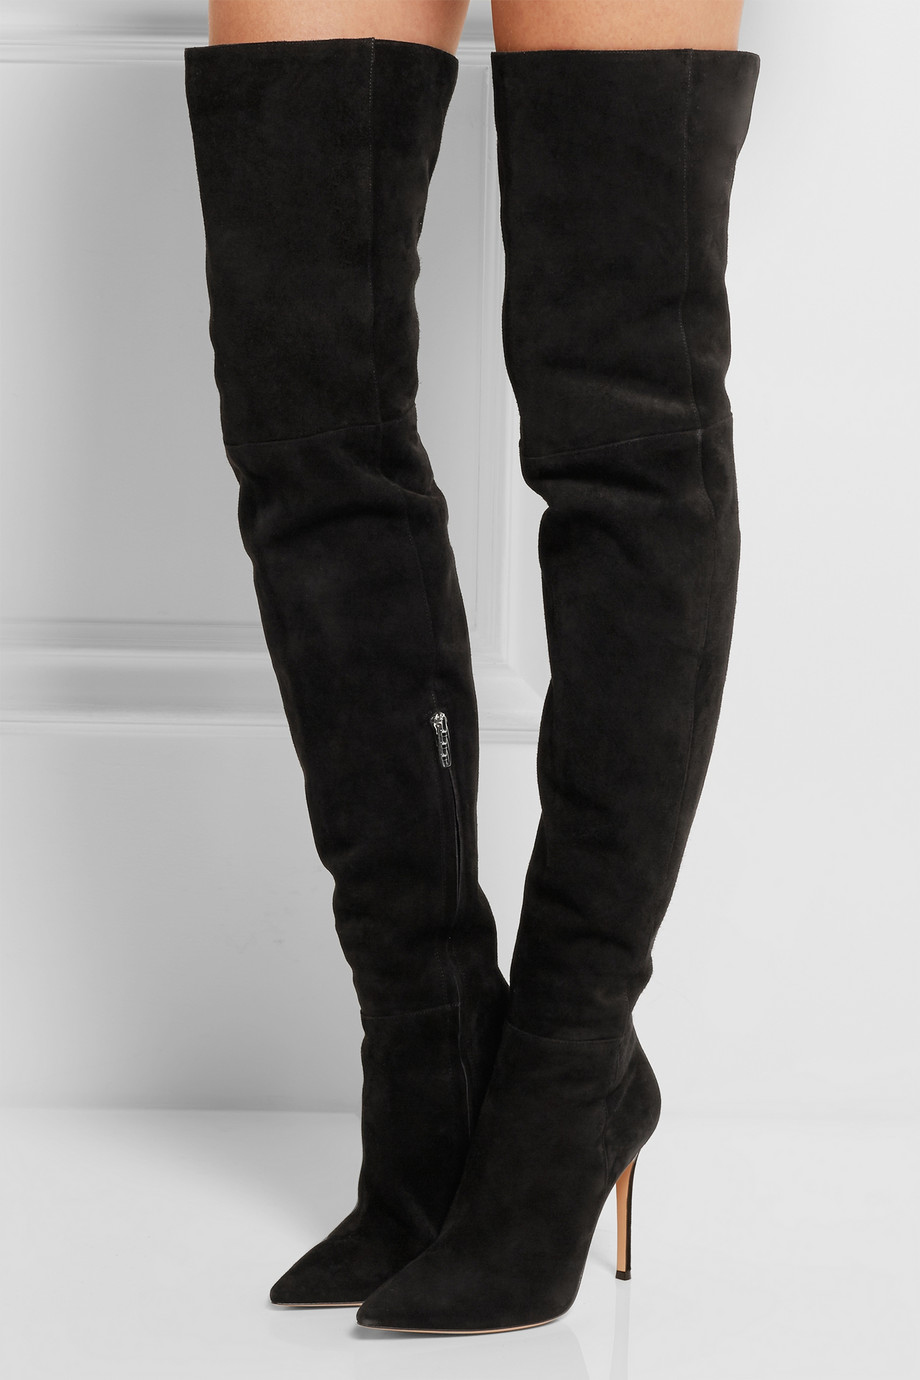 Autumn Winter Thigh High Boot Black Suede Over the Knee High Heel Boot Sexy Pointed Toe High Boot Side Zipper zapatos mujer